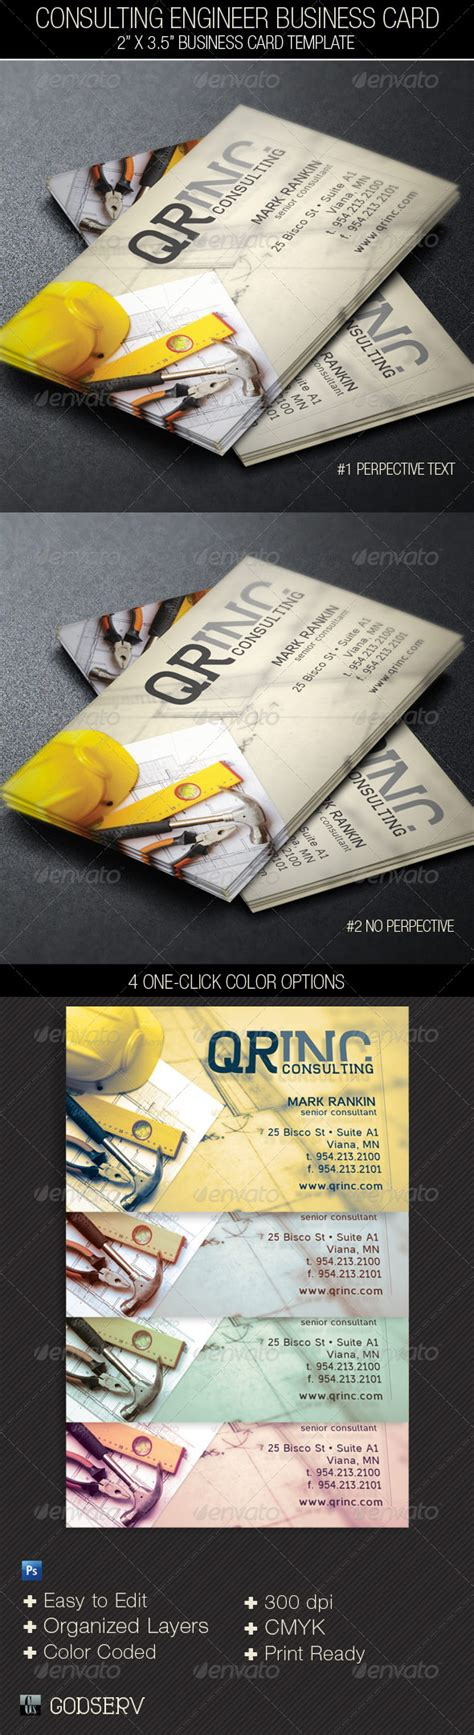 engineering card template consulting engineer business card template by godserv